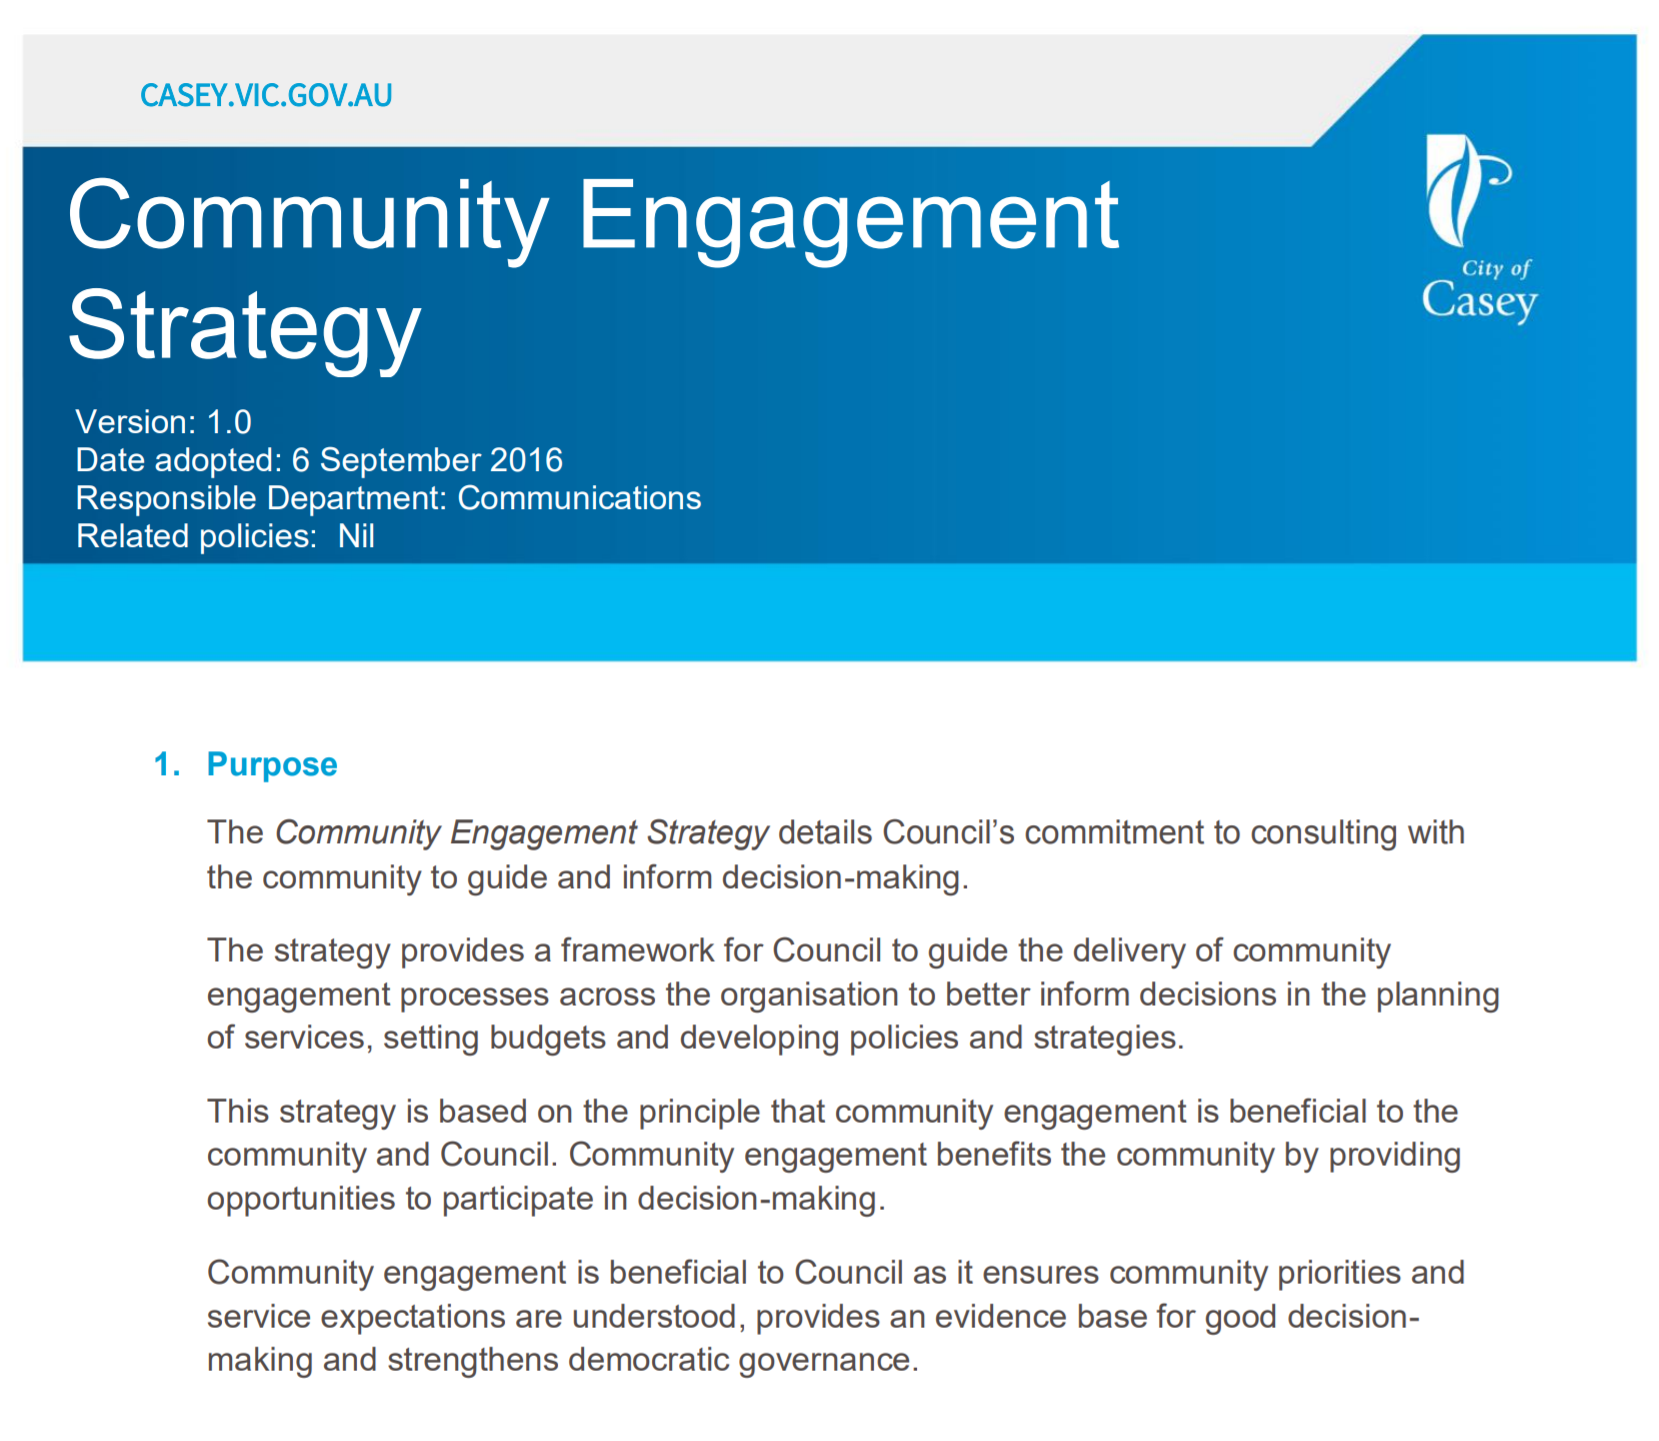 City of Casey Community Engagement Strategy